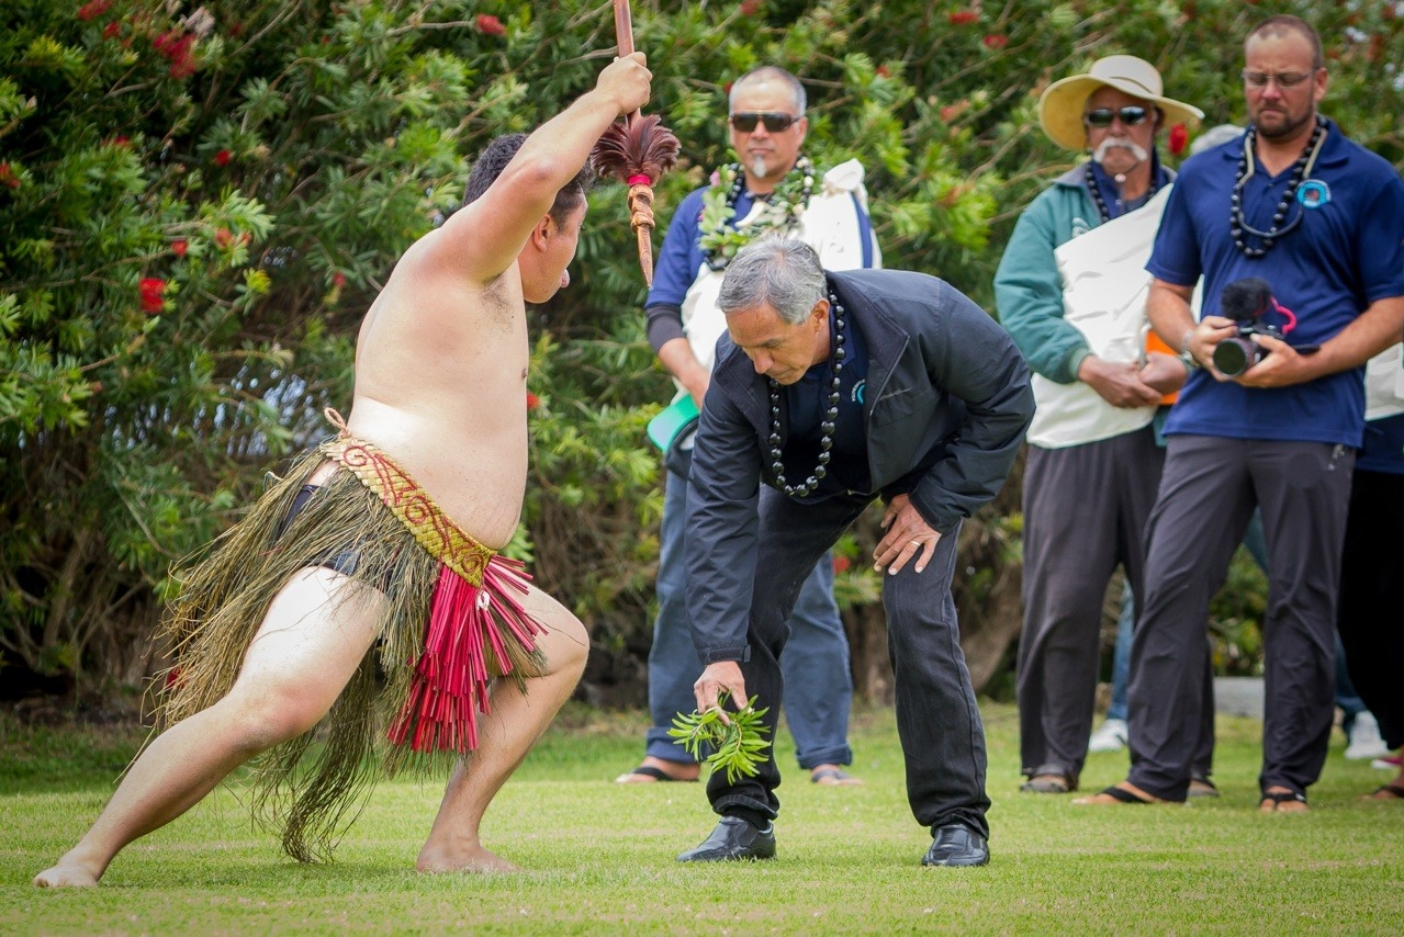 Once the crew has come ashore, the haka begins. A Māori has placed a branch on the grass as a challenge to the Hawaiian visitors. Captain Nainoa Thompson collects it, unflinchingly, as a warrior advances. Photo: John Bilderback